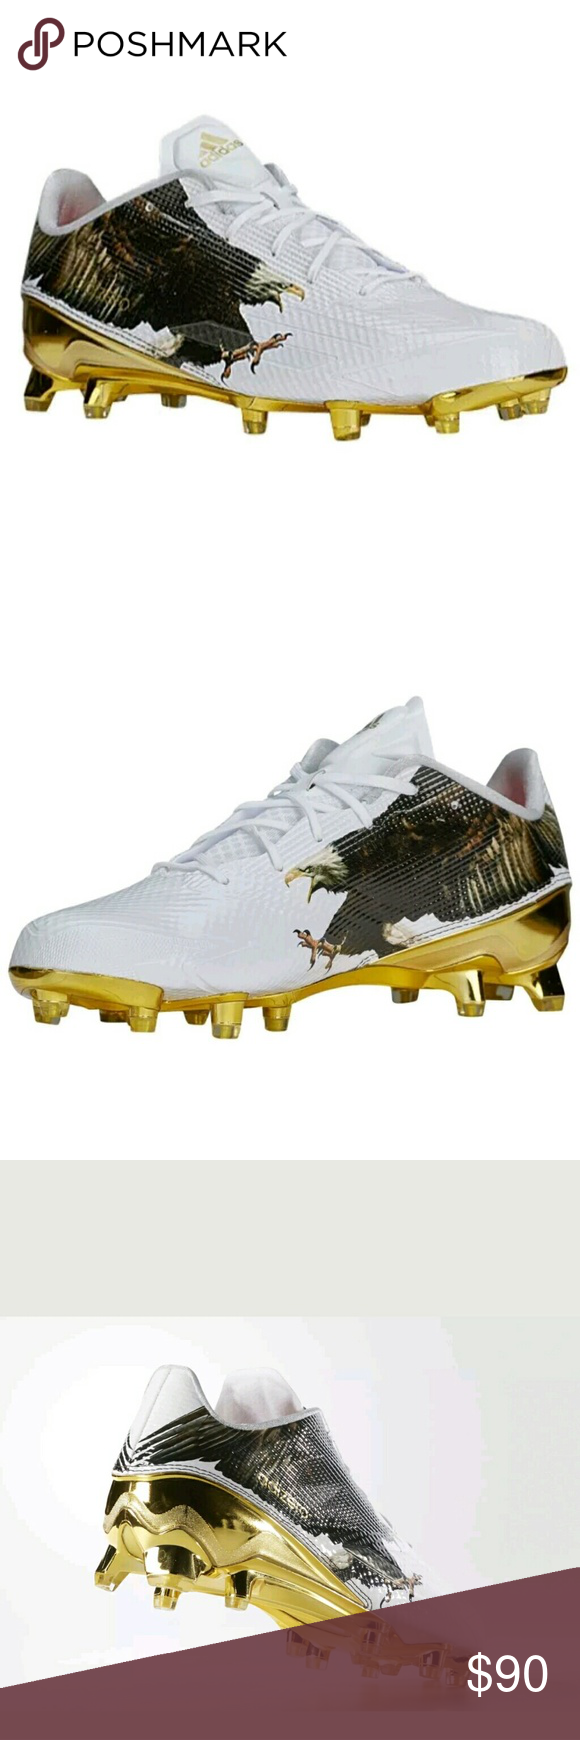 size 40 7e280 1812f Adidas Adizero Uncaged Eagle Football Cleats Sz 10 Adidas Adizero Uncaged  Eagle Football Cleats Size 10 White Gold 5-Star 5.0 NEW Condition  Brand  New ...